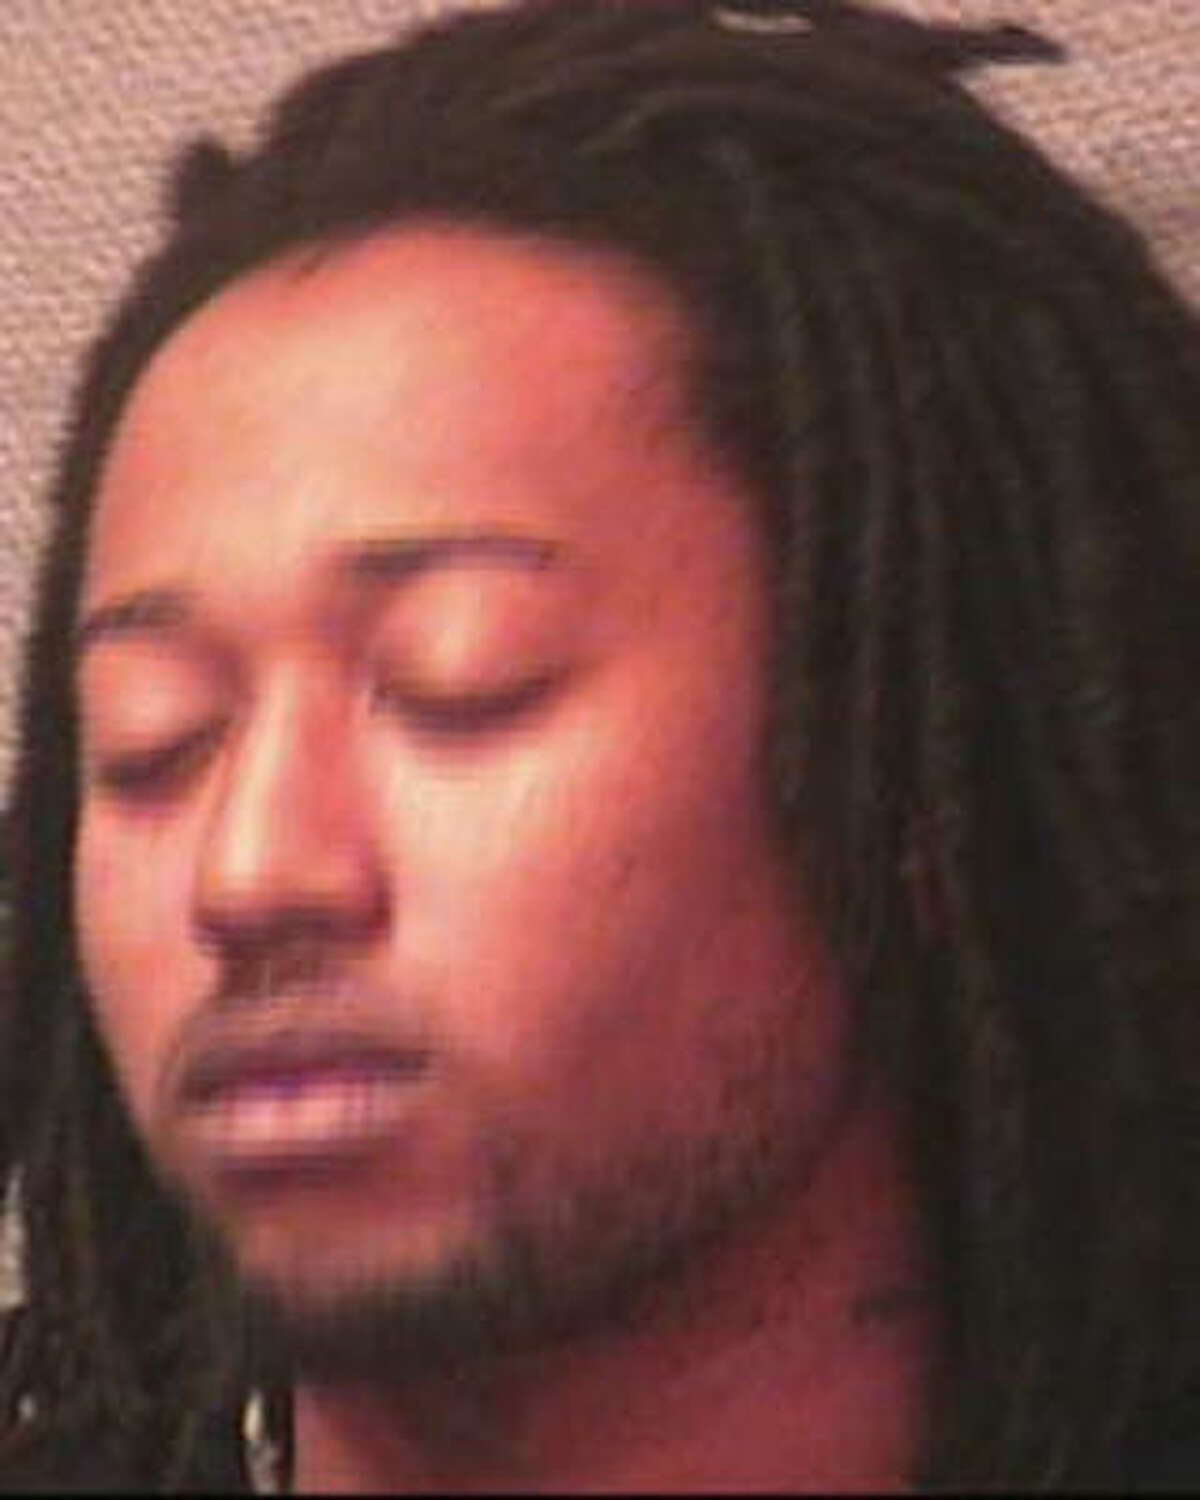 Police allege that Walter Allen was trying to use a check from a Federal Reserve bank.